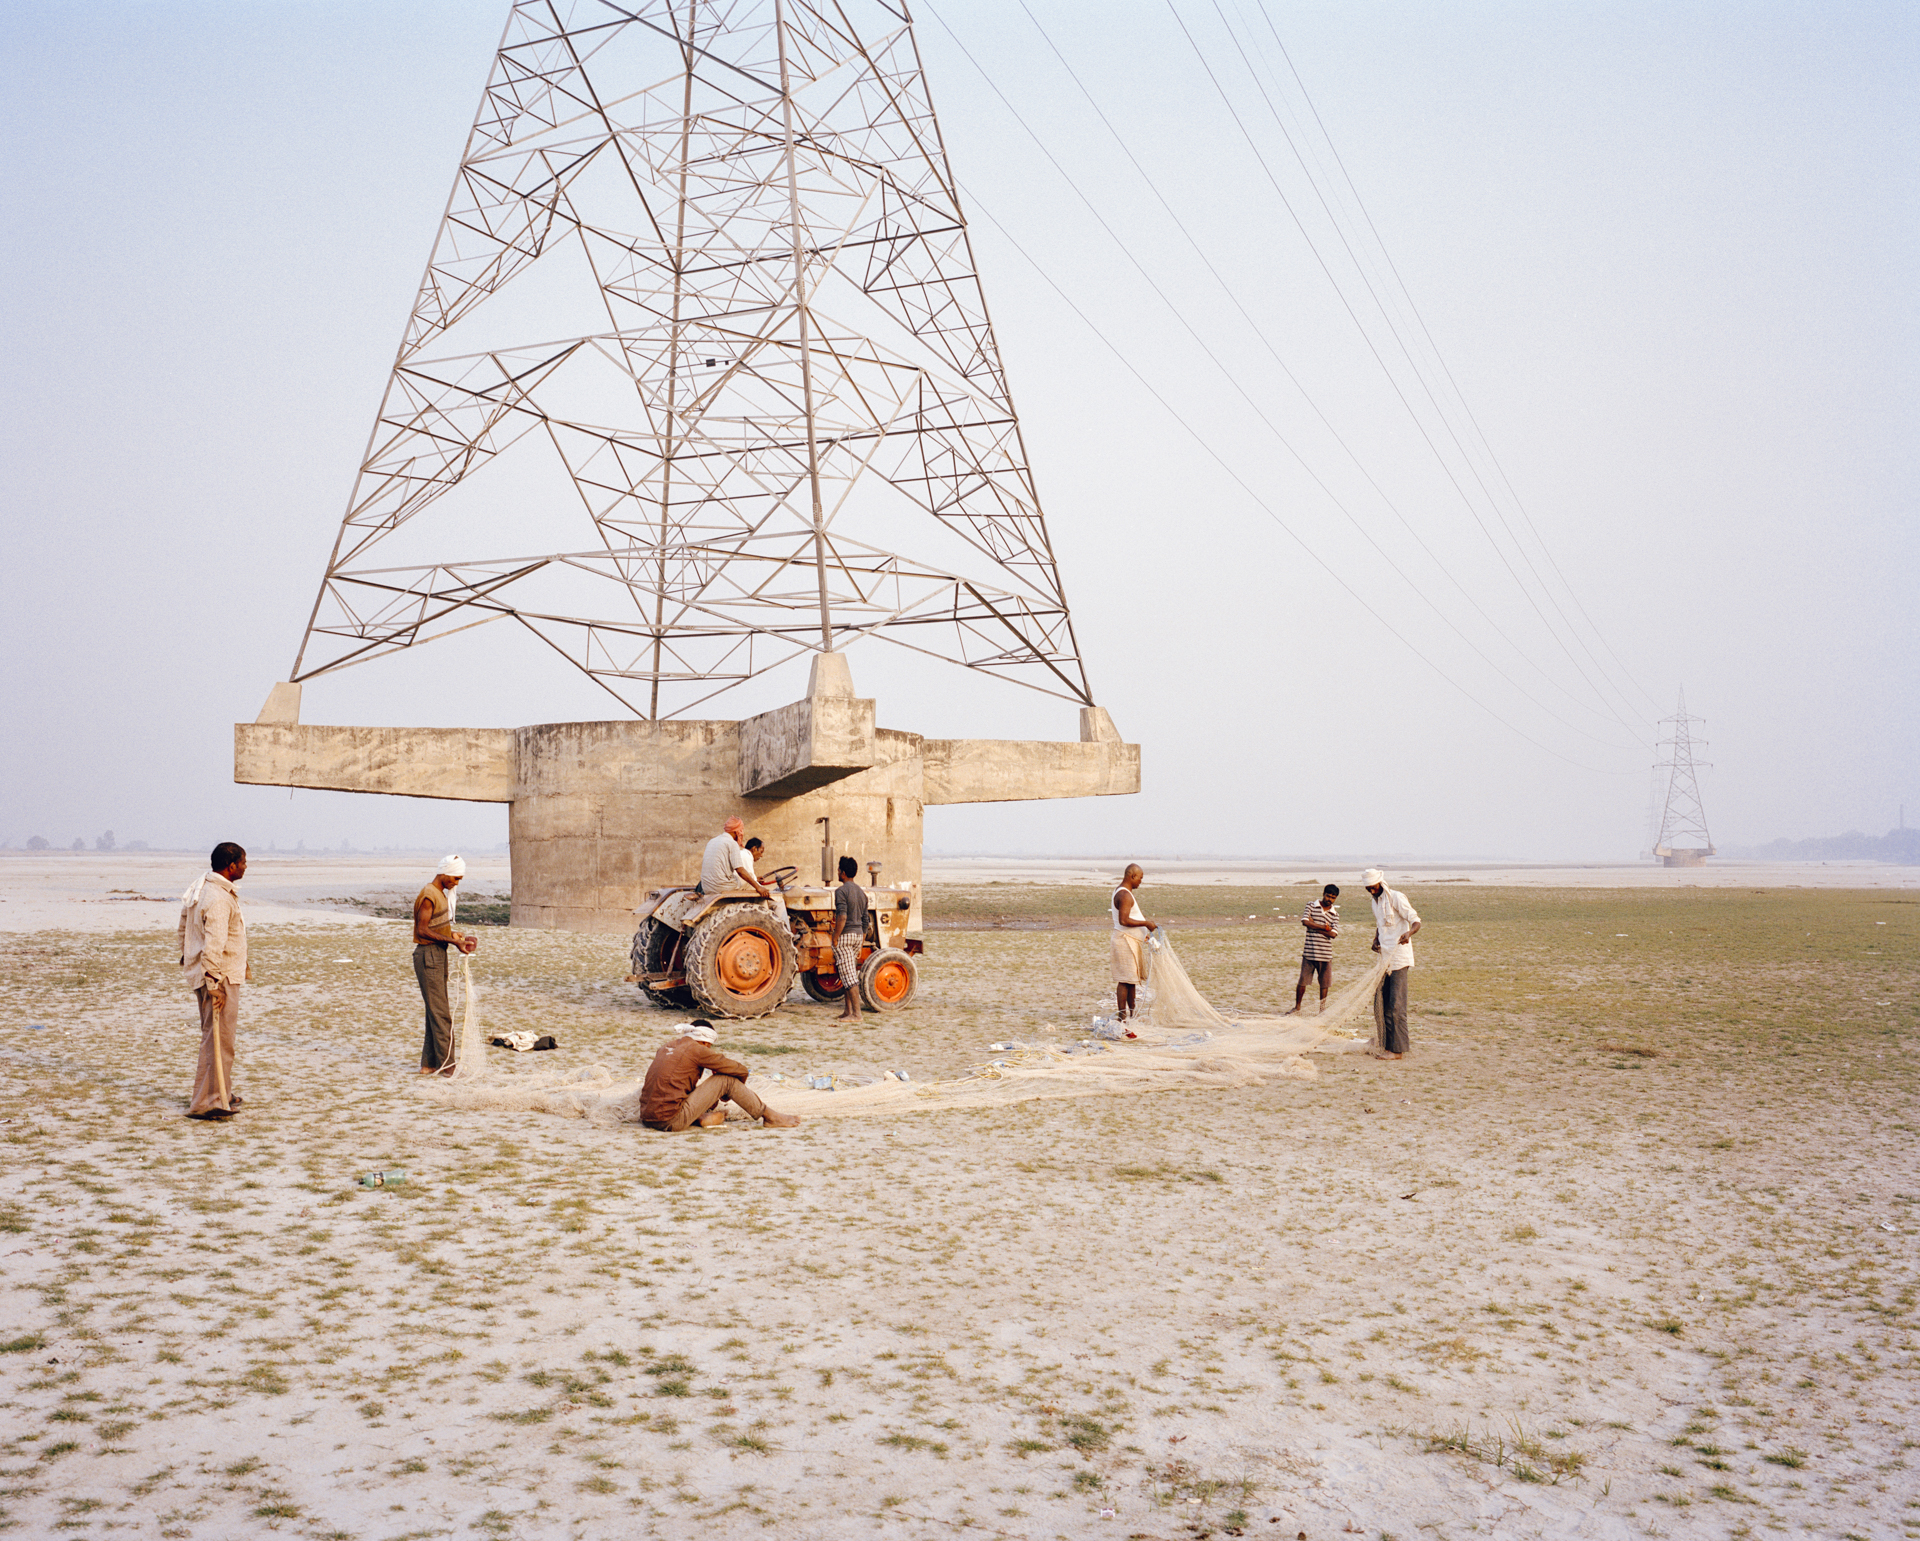 Dry Ganges river bed. Kanpur, India, 2014.